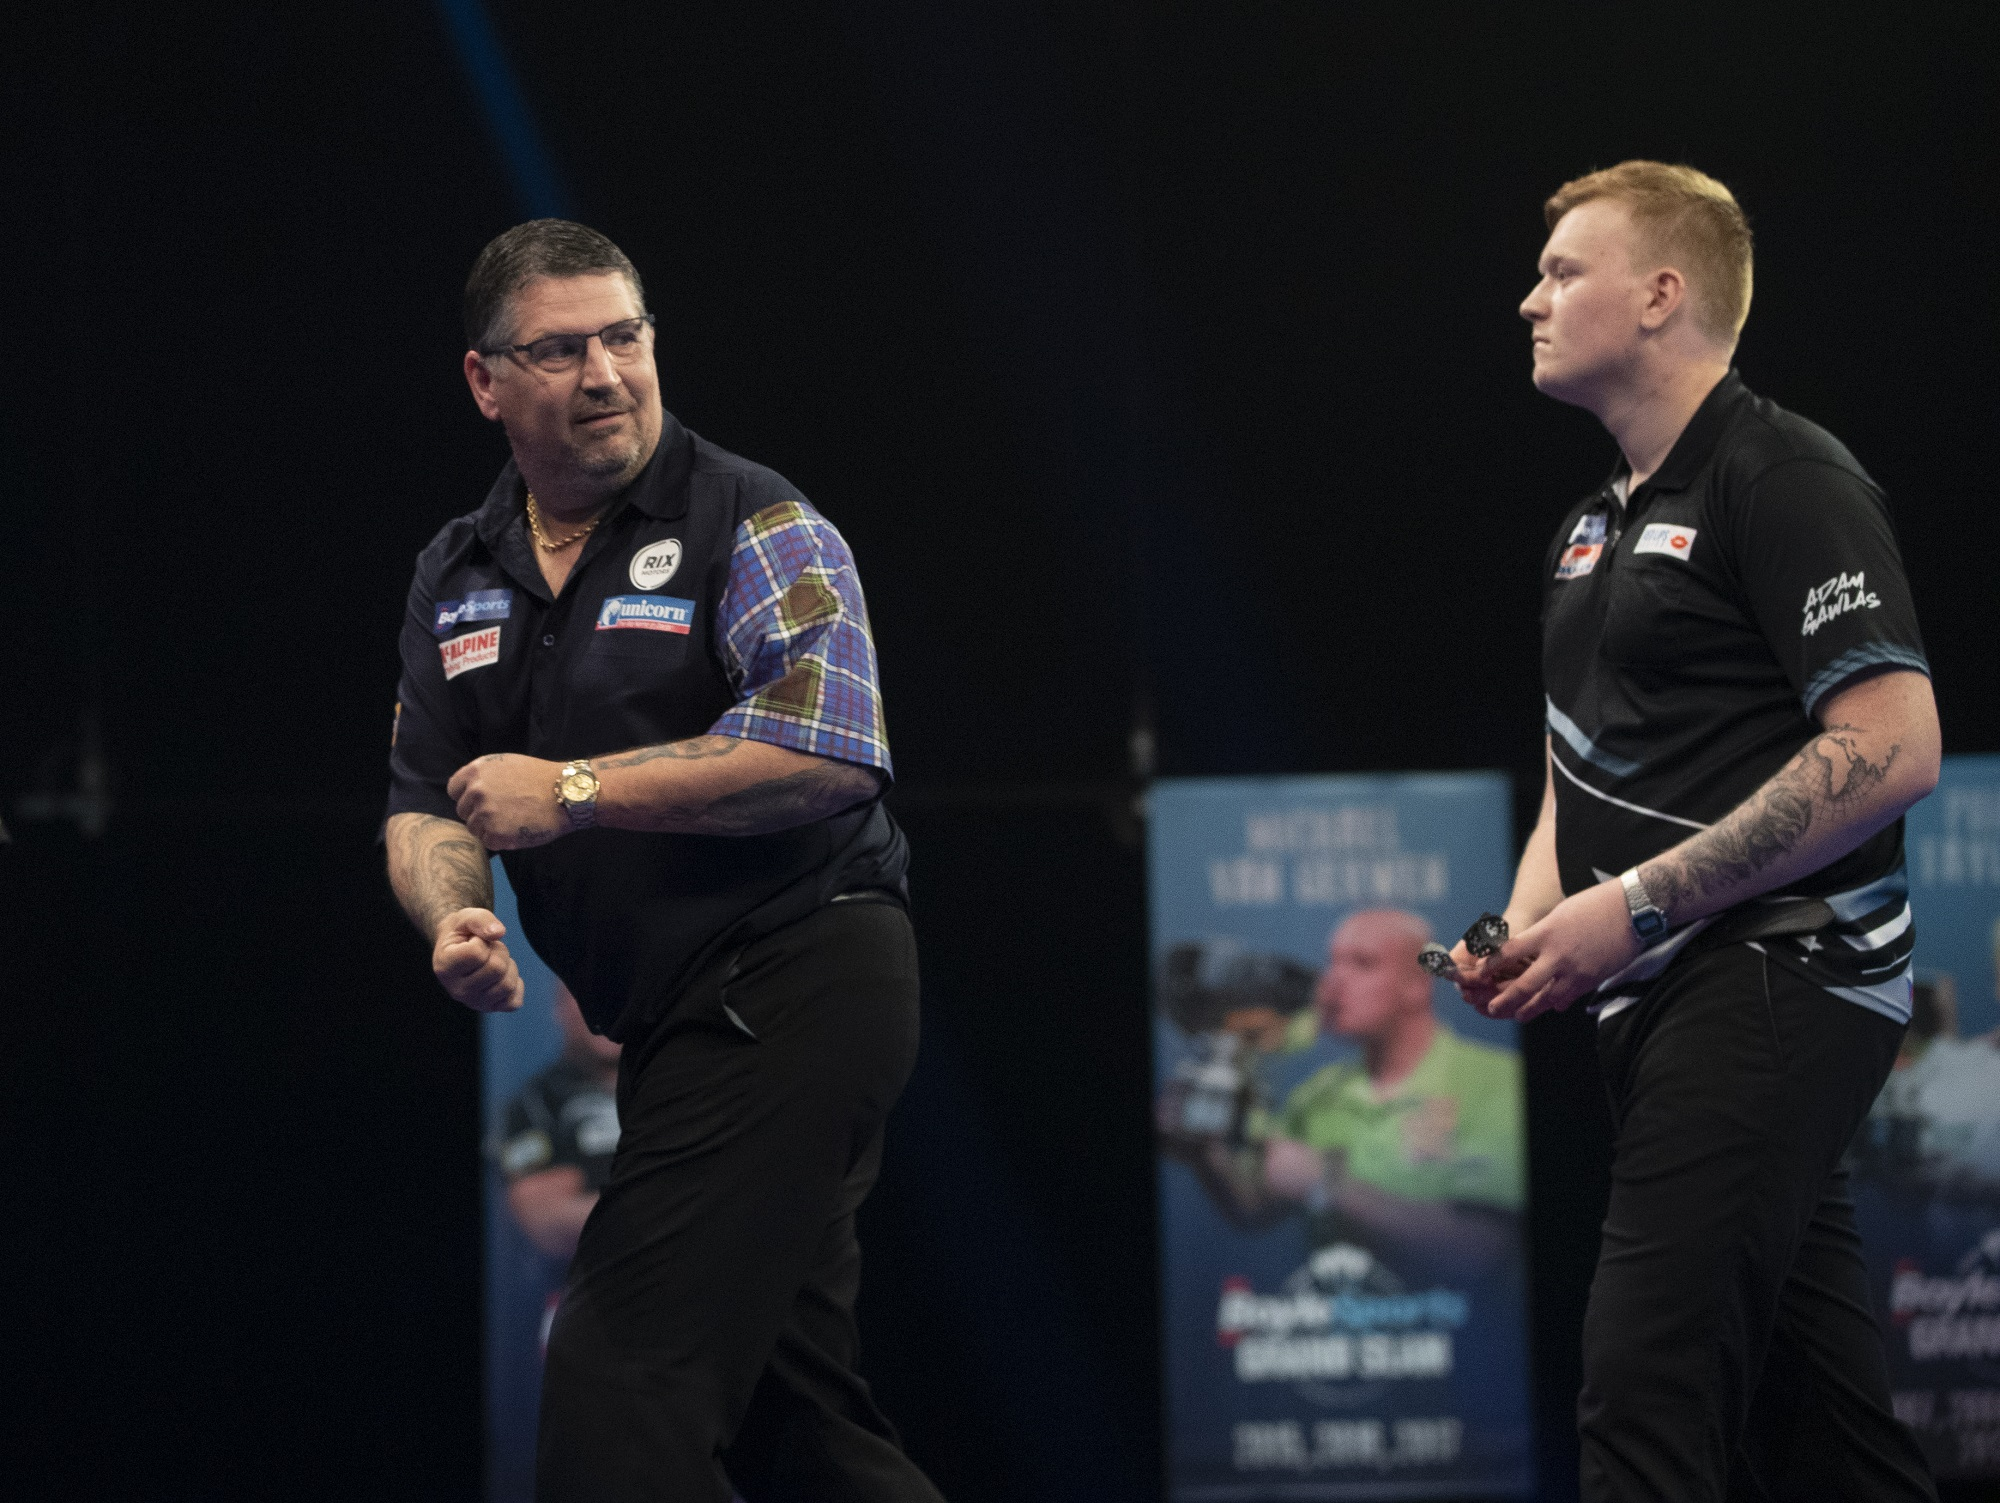 """Gary Anderson On Cheating """"If they do it, they're not darts players, they're cowards it's as simple as that."""""""